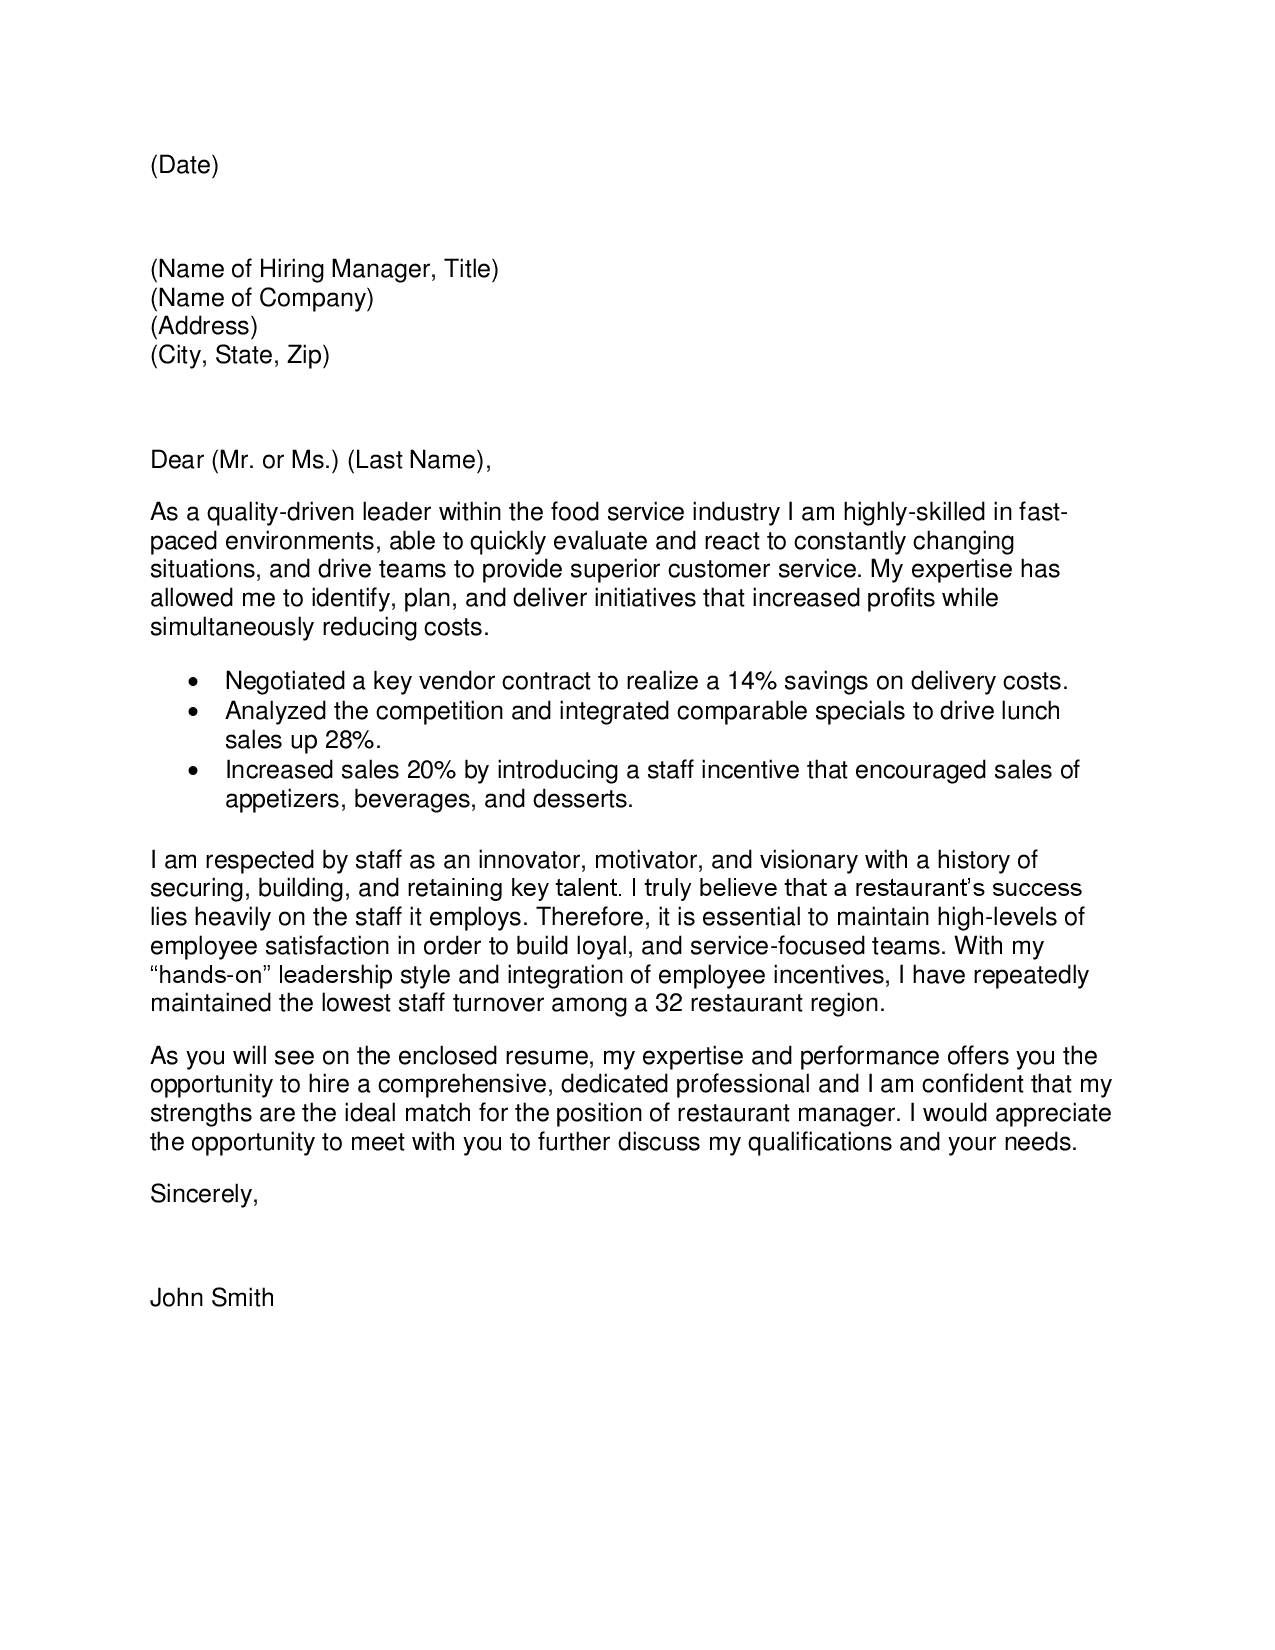 letter with psychology at deloitte hr part of transfer pricing ...